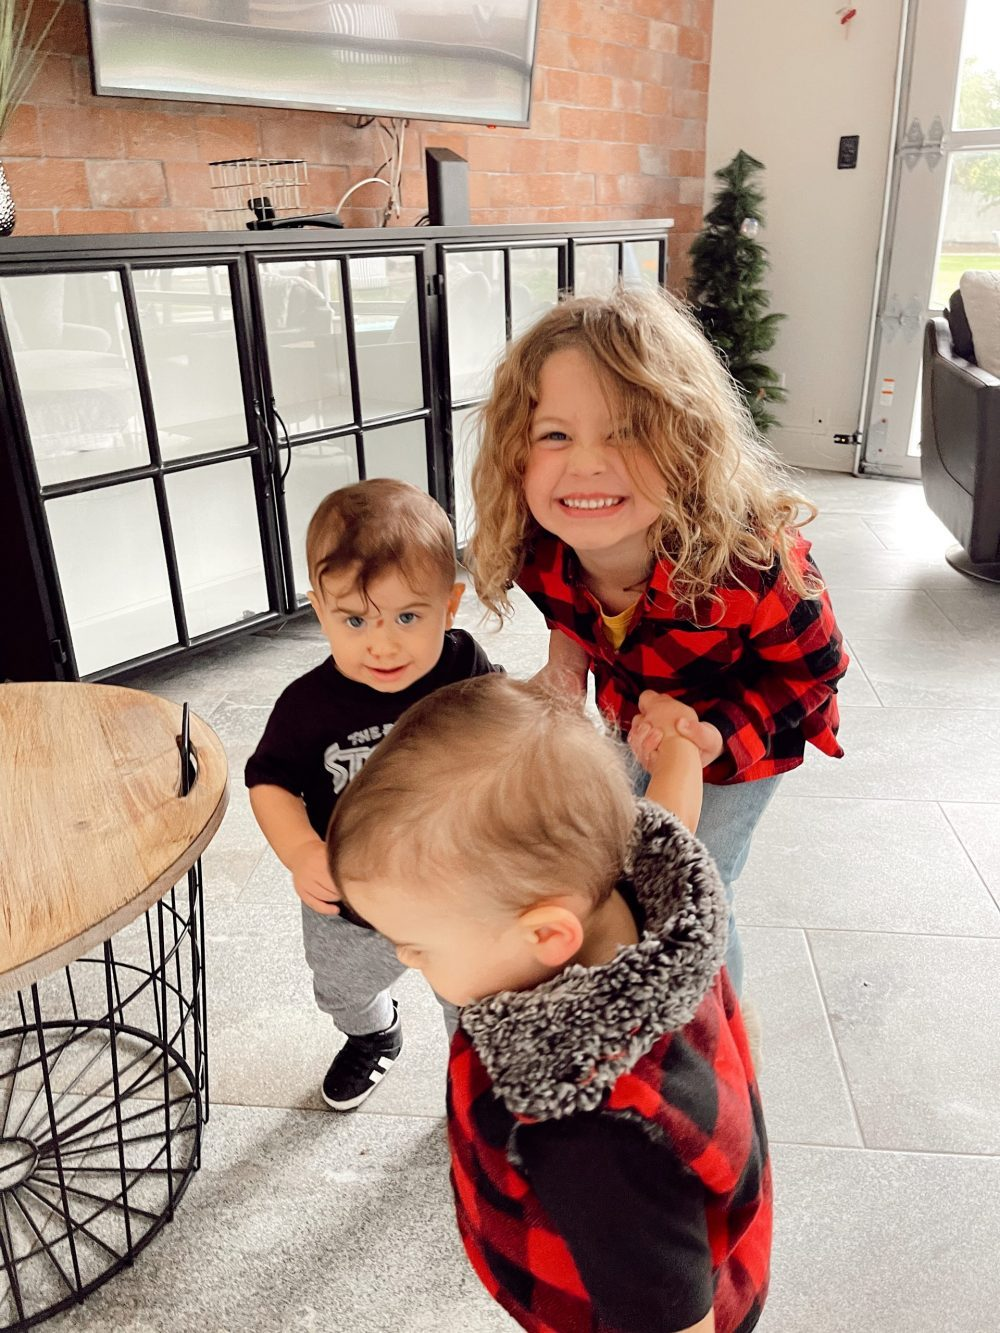 One of the Best Secret Winter Sun Destinations, Scottsdale Arizona. Family-friendly property rental at Bella's Villa Voltaire |Guide by popular Florida travel blog, Fresh Mommy Blog: image of three young kids playing together.